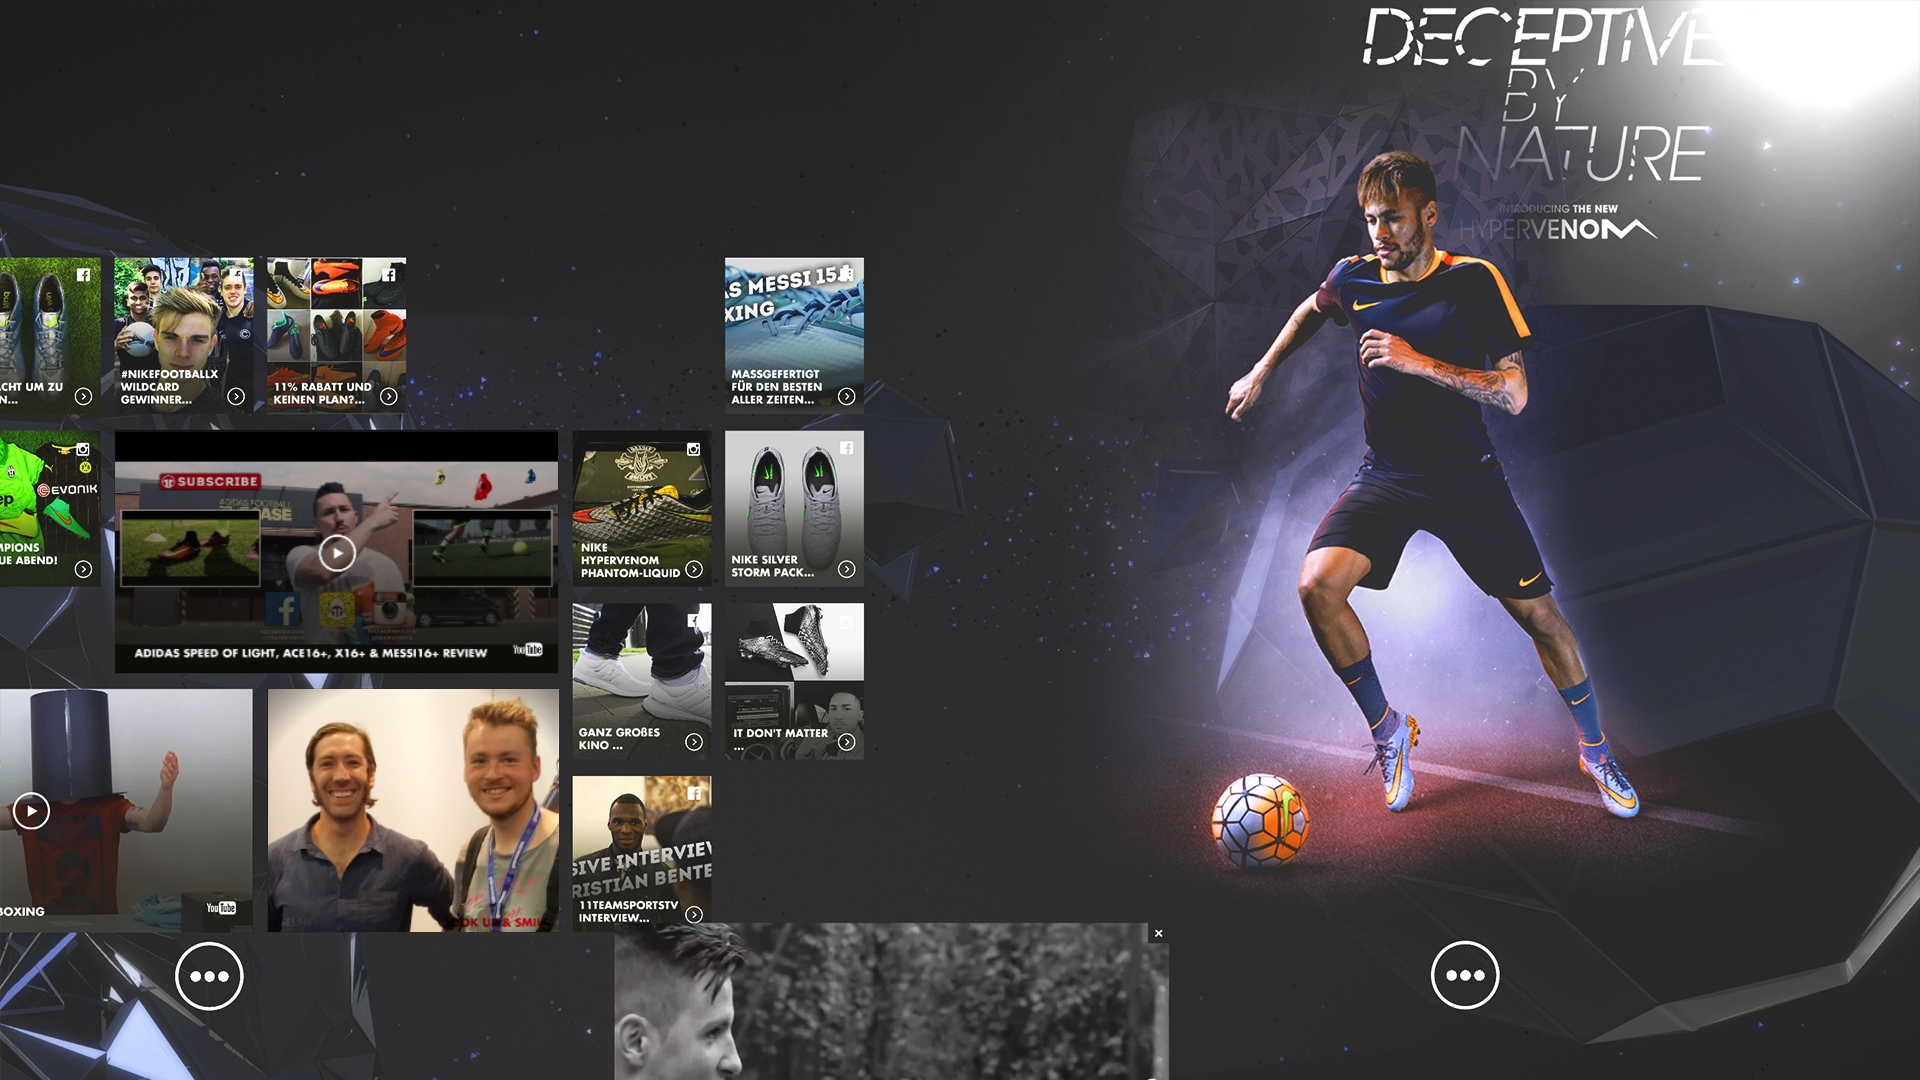 nike digital retail experience social media wall made with unity